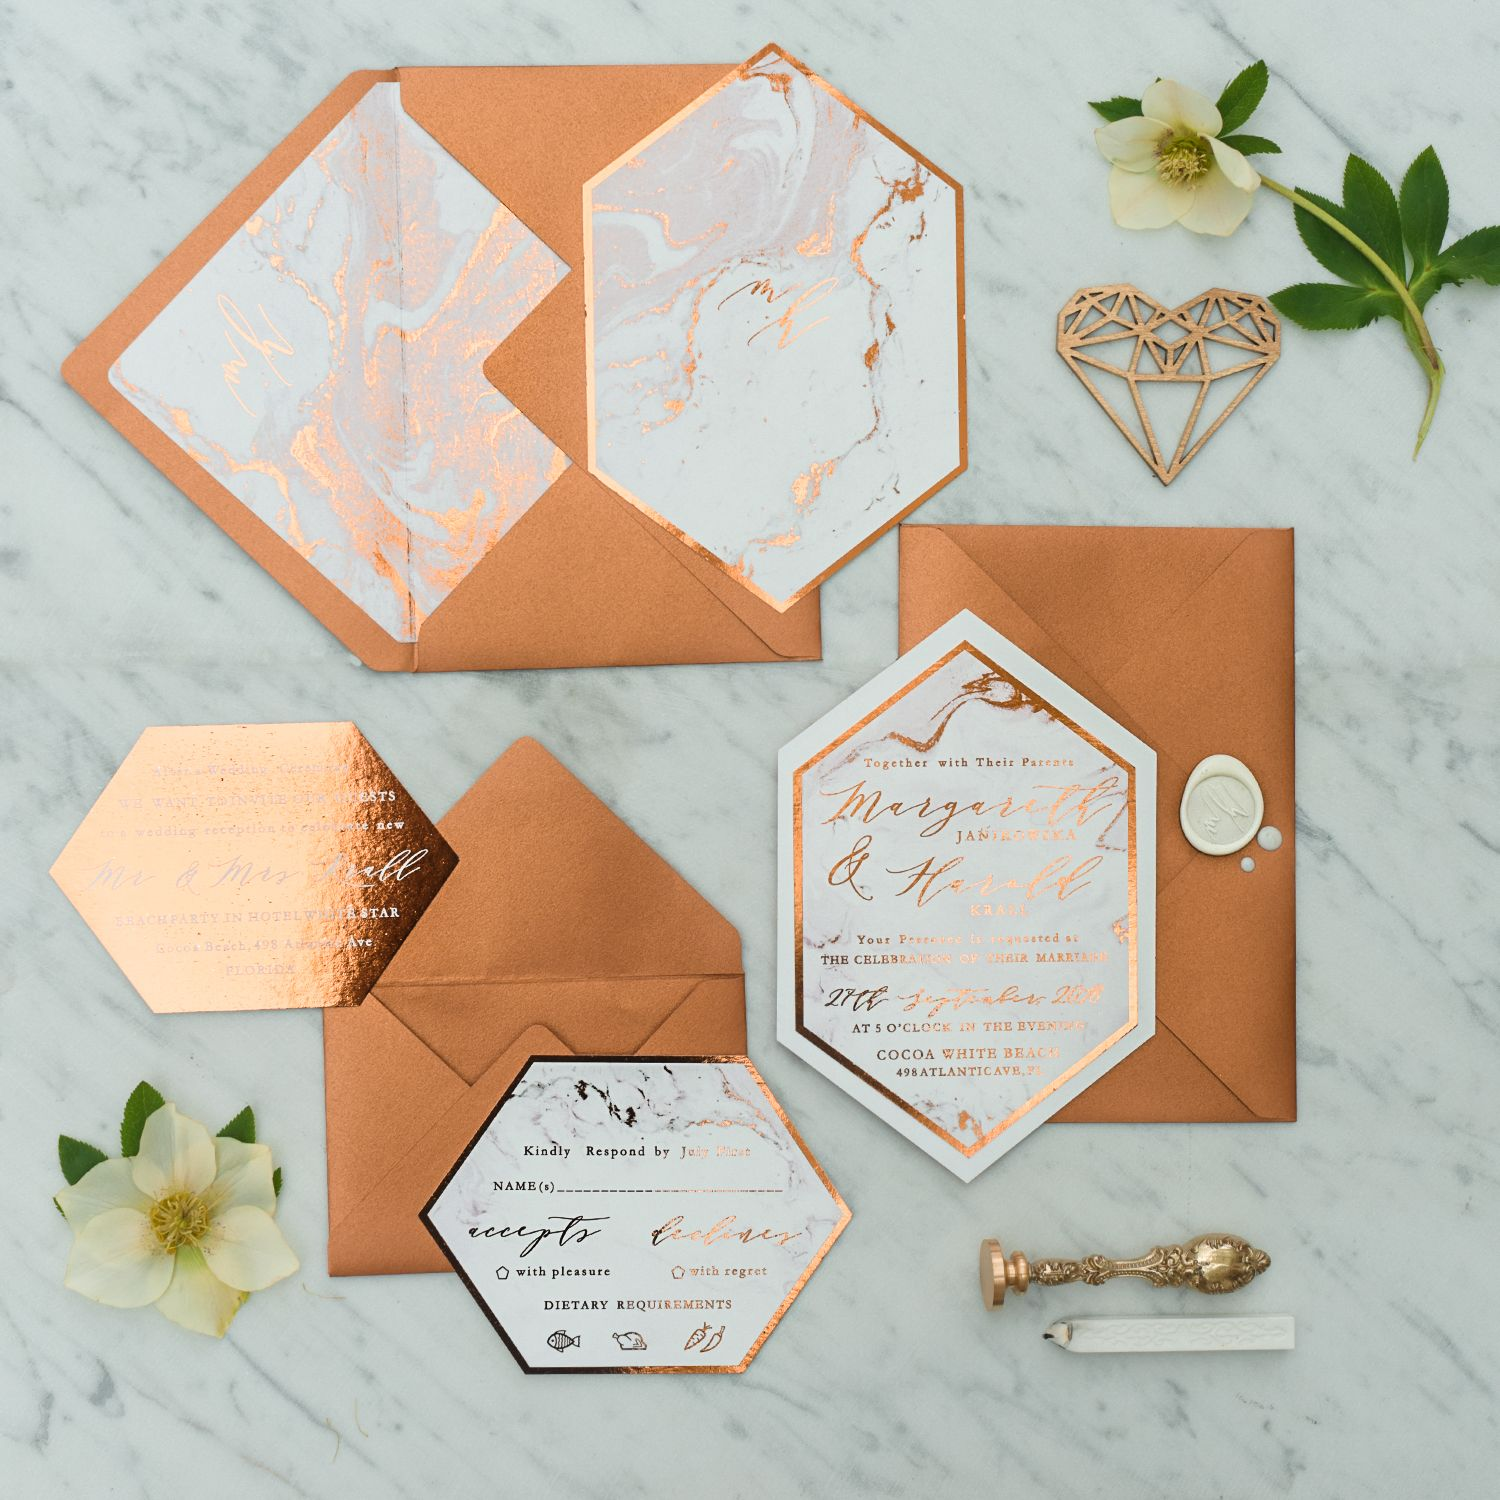 42 Fabulous Luxury Wedding Invitation Ideas That You Need: Awesome 42 Fabulous Luxury Wedding Invitation Ideas That